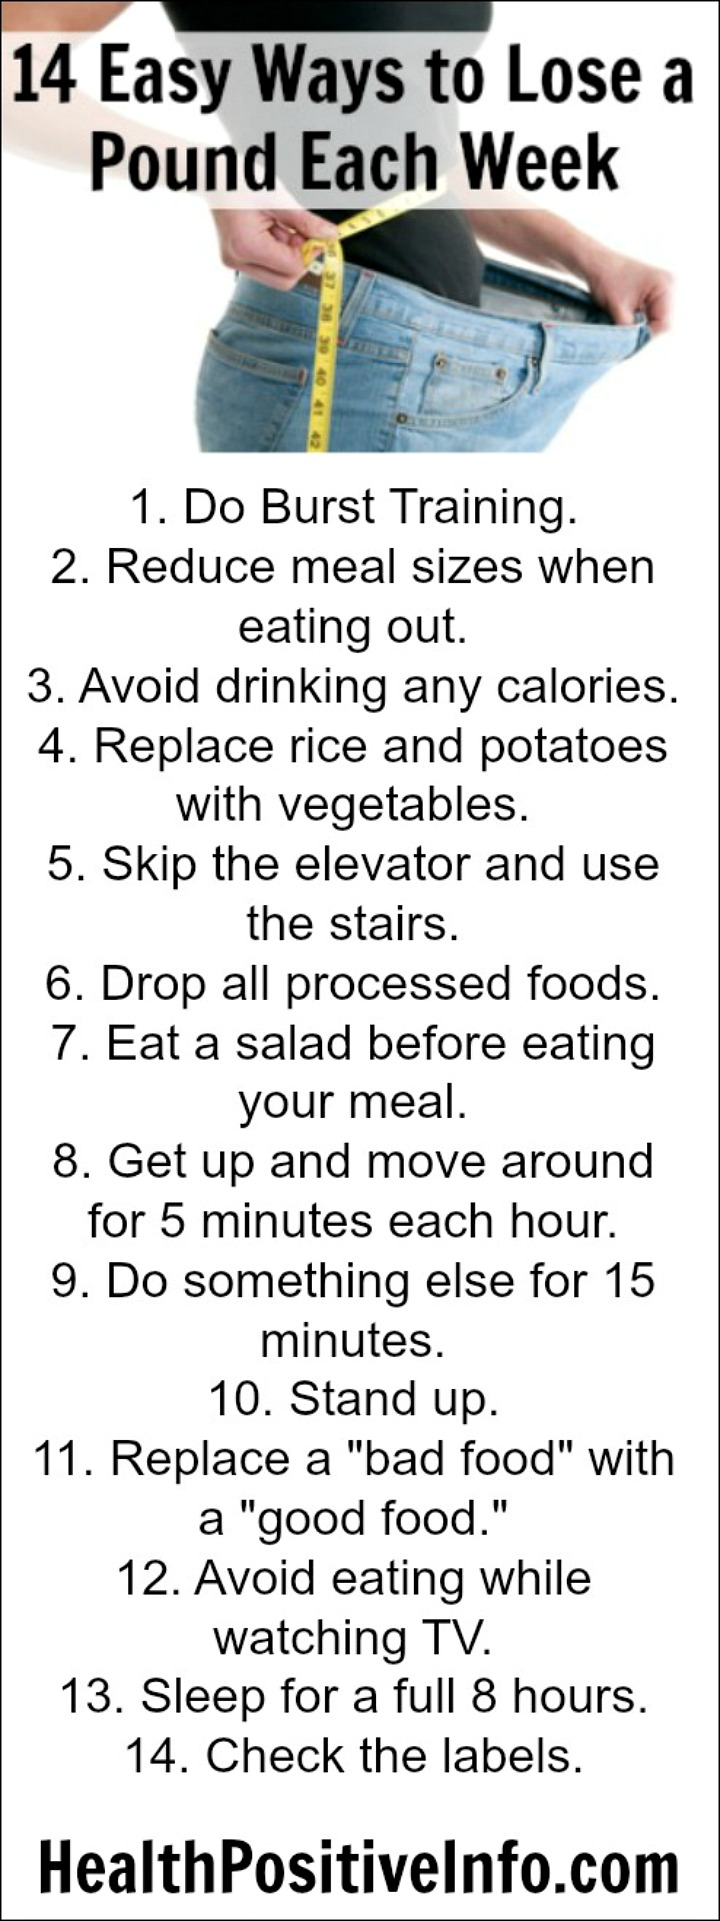 14 Easy Ways to Lose a Pound Each Week - https://healthpositiveinfo.com/14-easy-ways-to-lose-a-pound-each-week.html